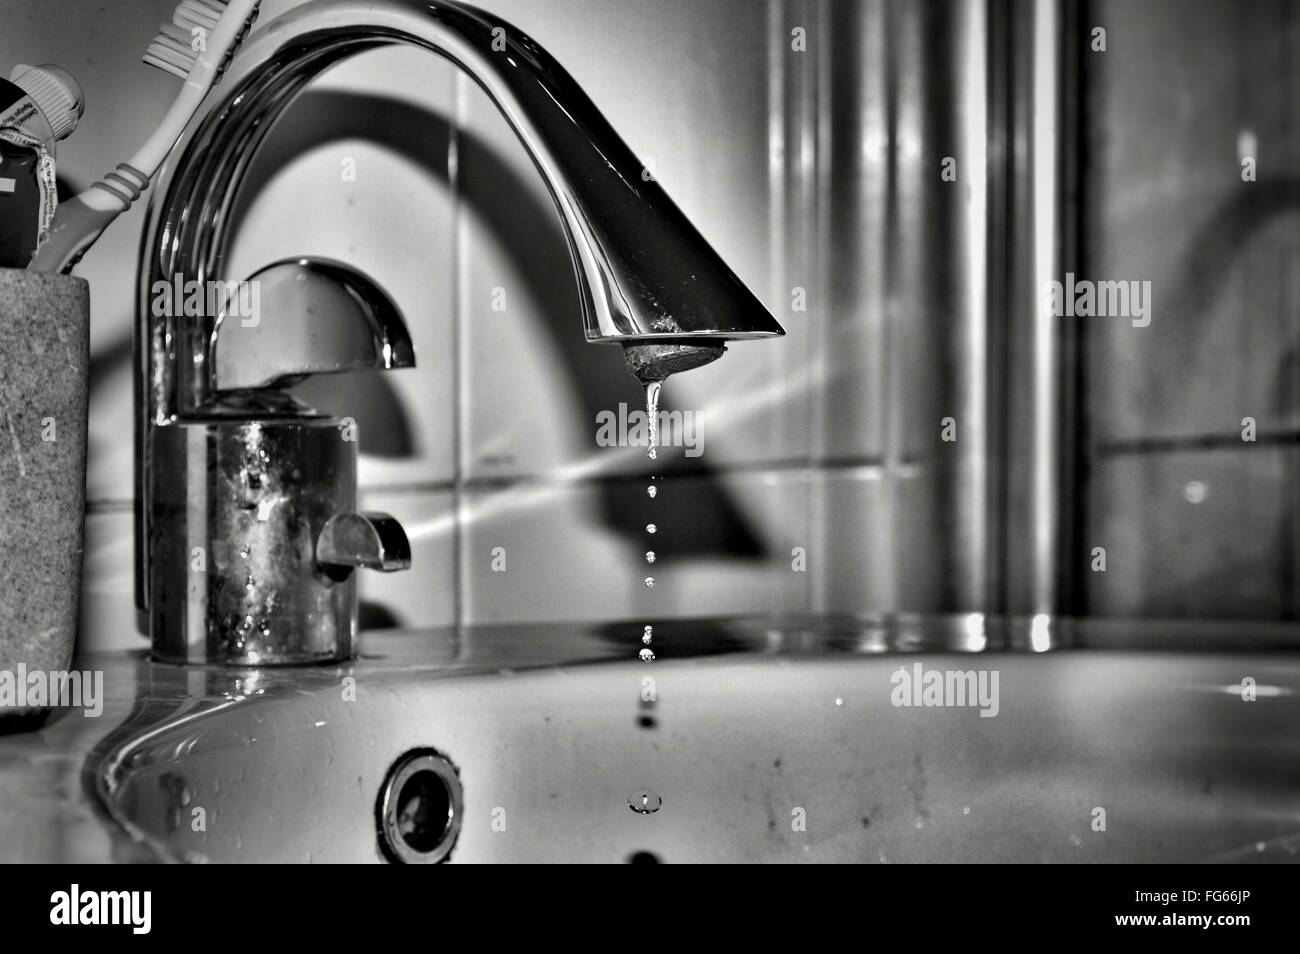 Close-Up Of Water Spilling From Faucet In Bathroom Stock Photo ...